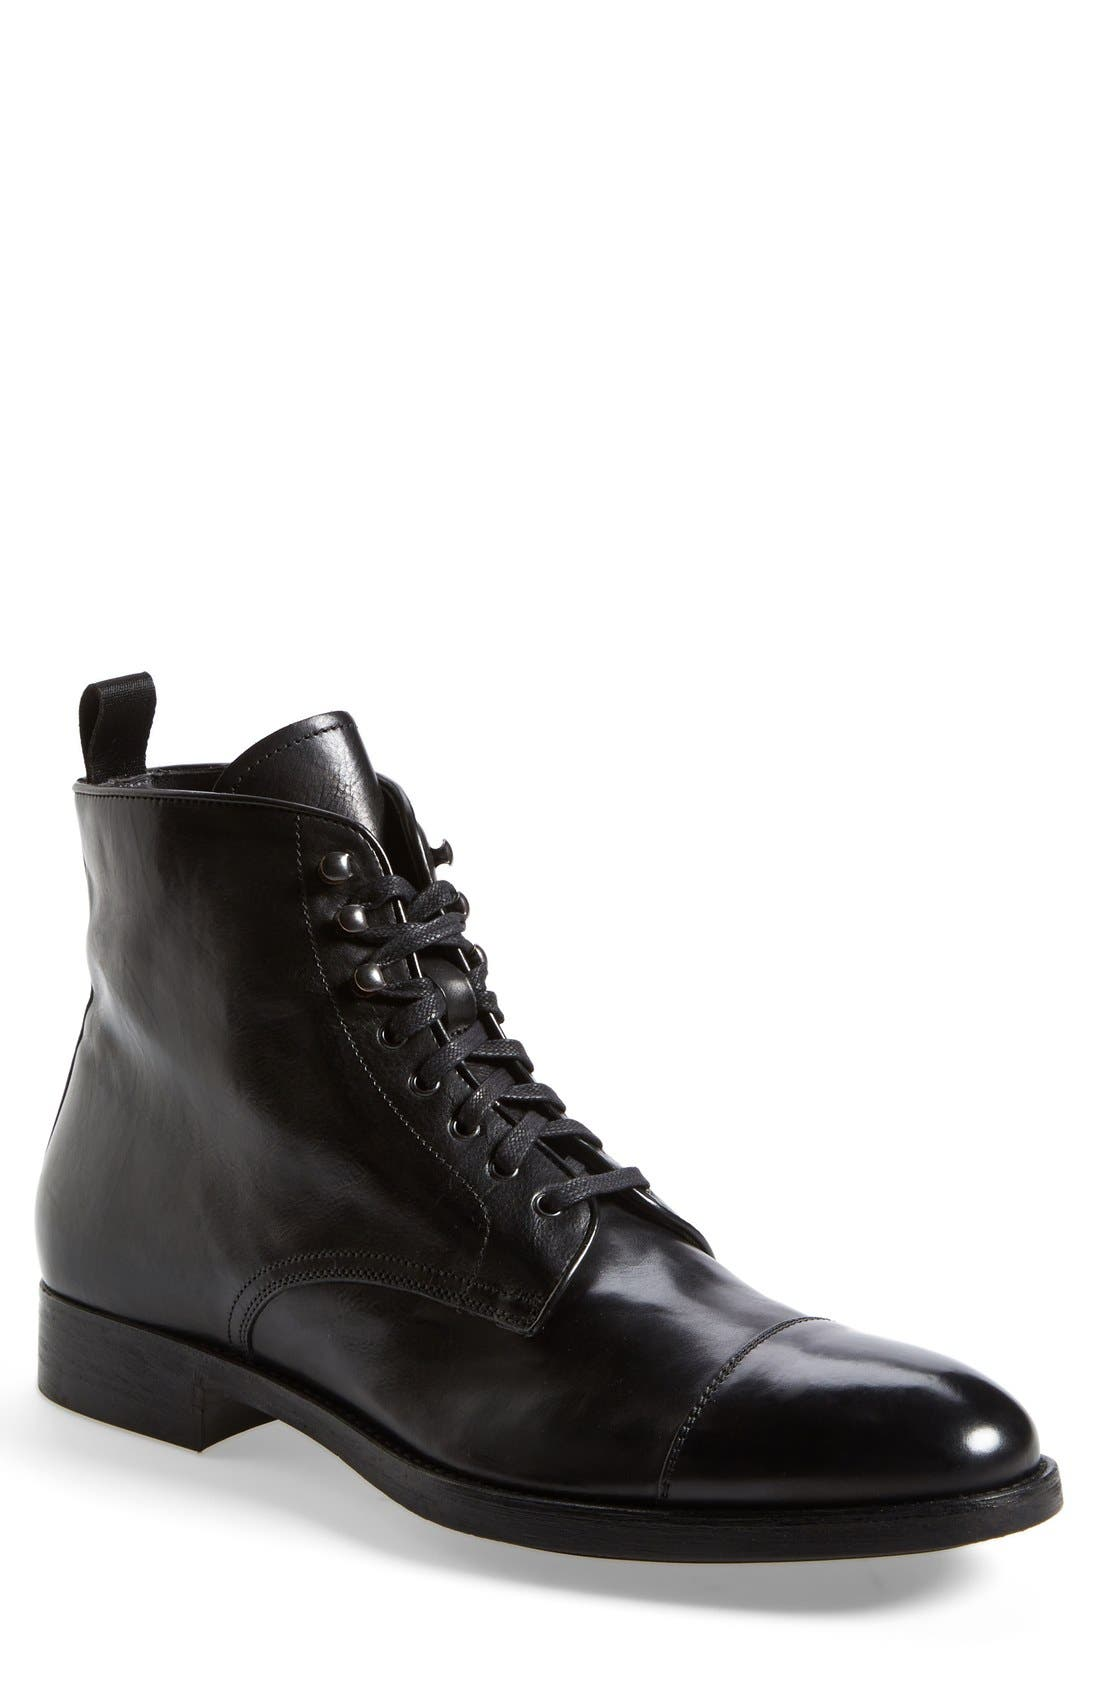 Main Image - To Boot New York 'Stallworth' Cap Toe Boot (Men)